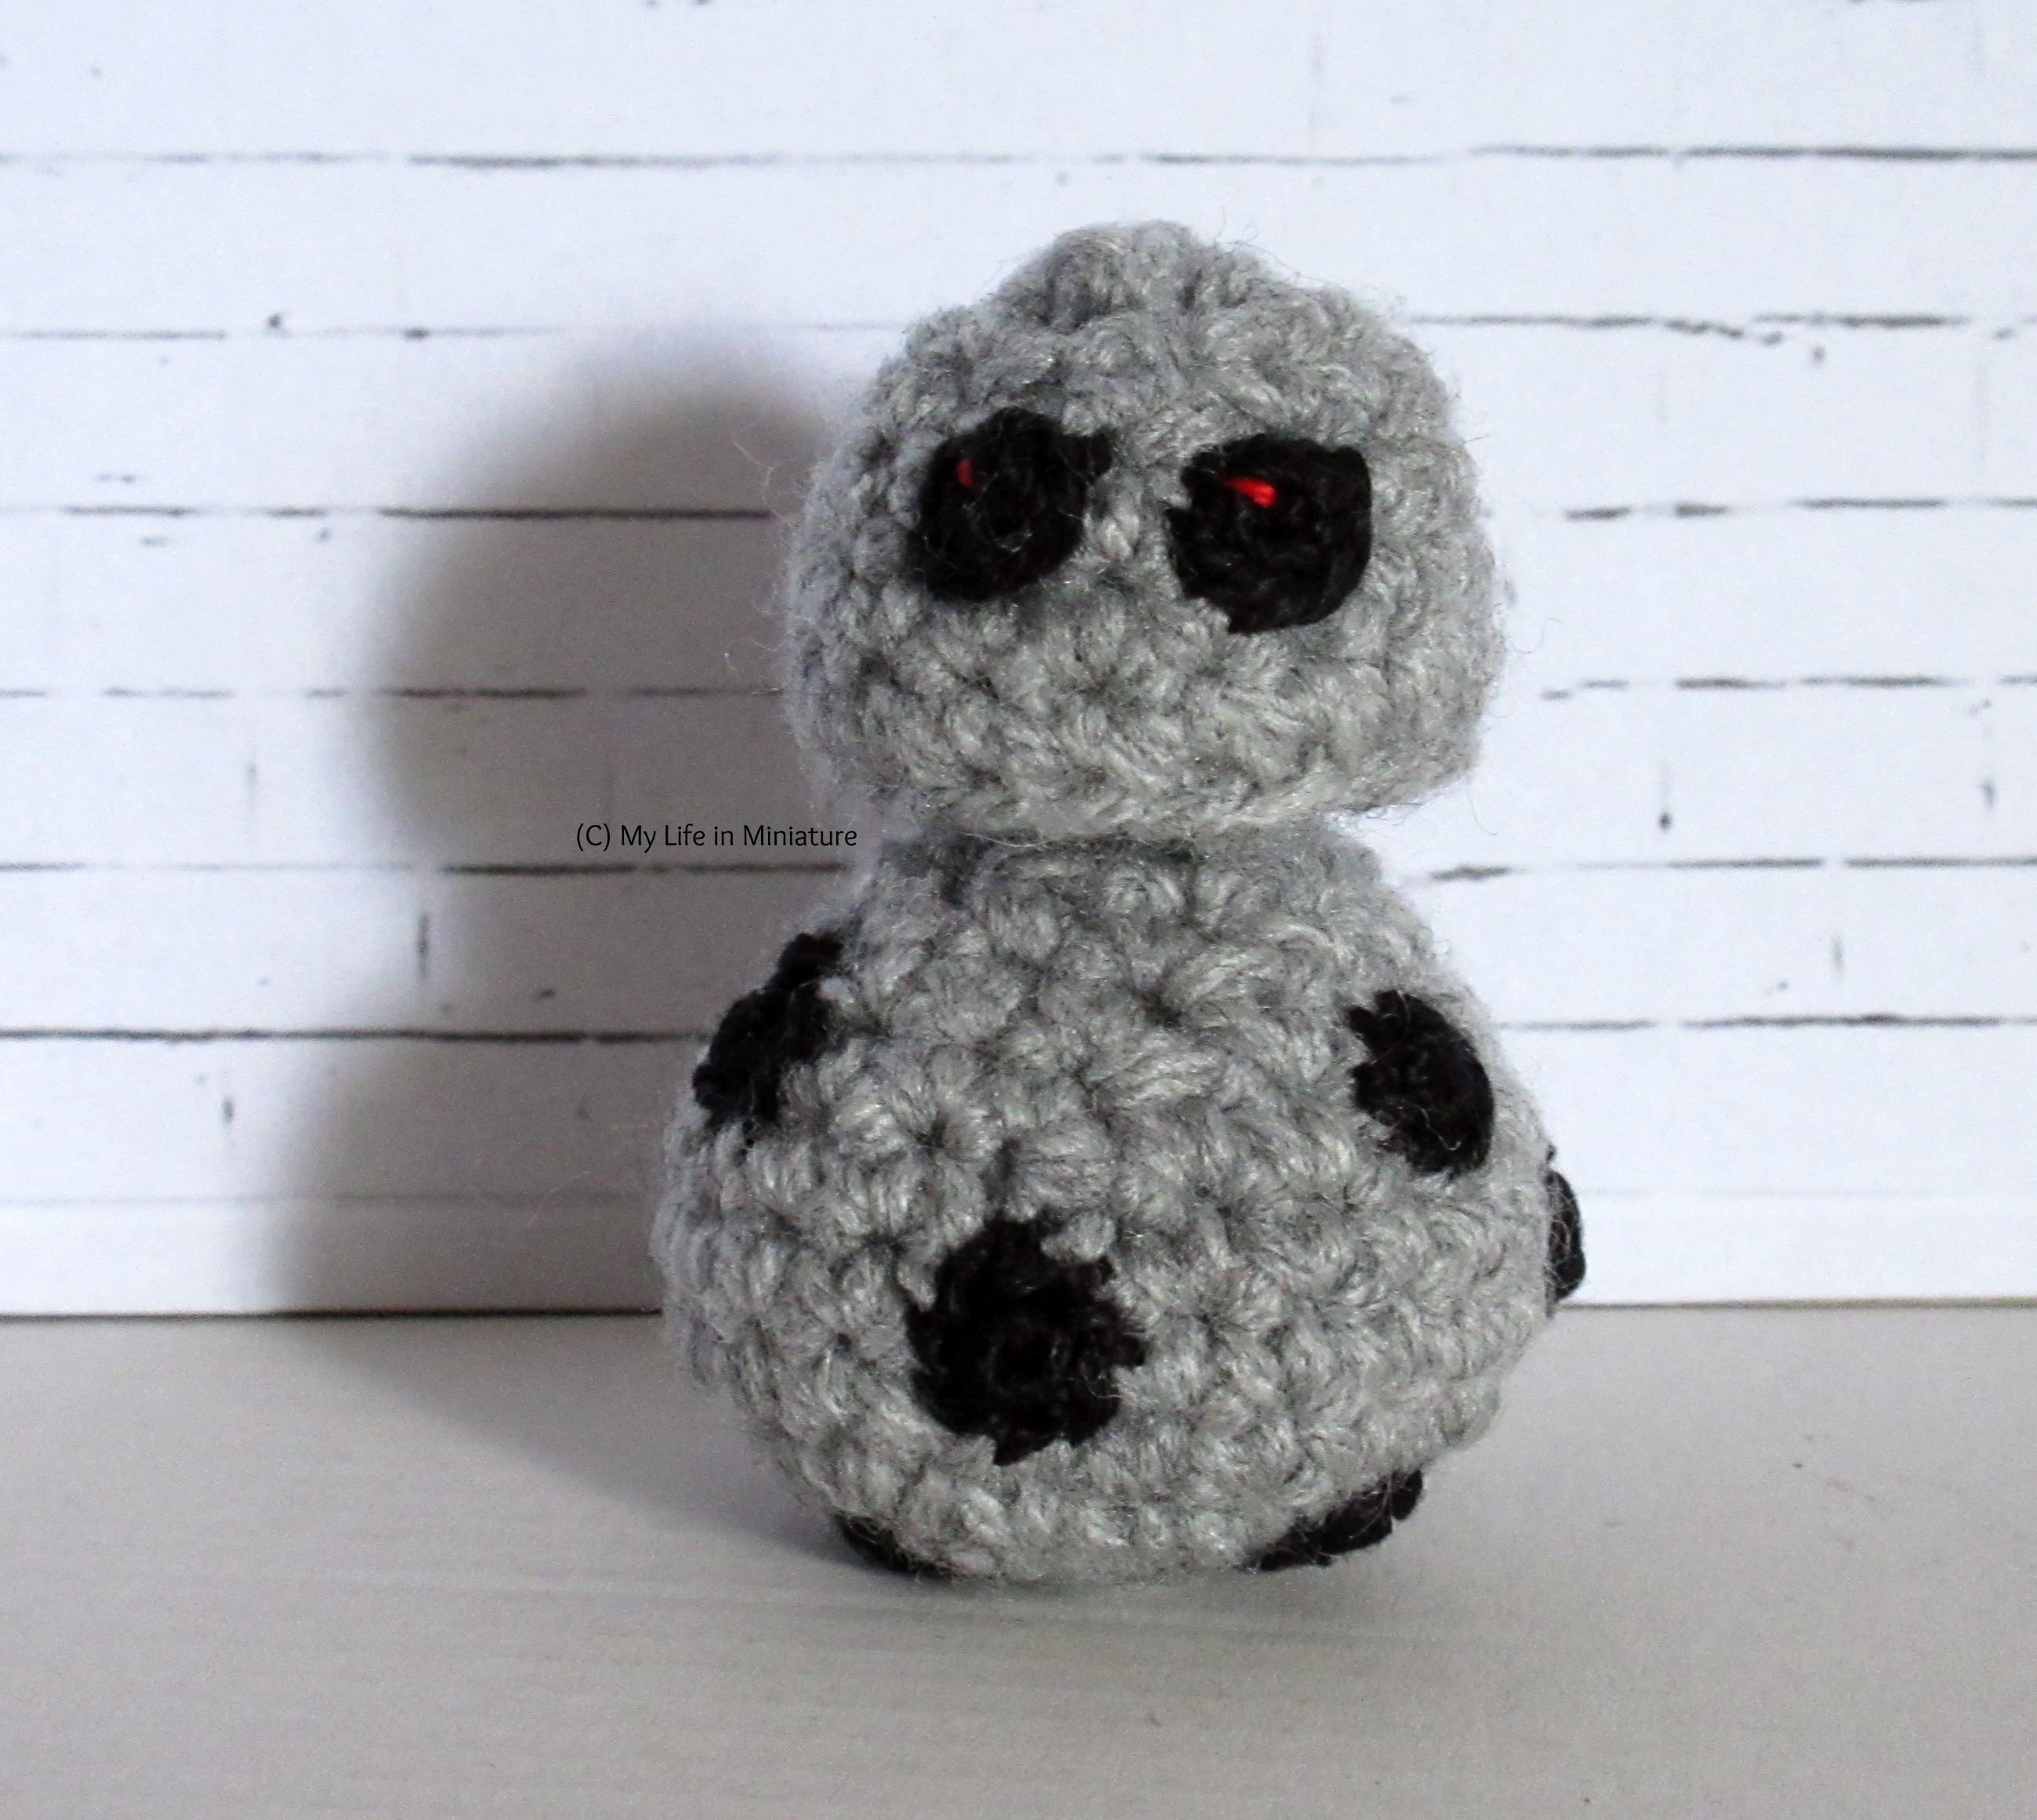 A small android sits against a white brick background. They are the same silhouette as BB-8, but grey with more small black function openings on their body. They have two optical sensors on their head, both looking at the camera.